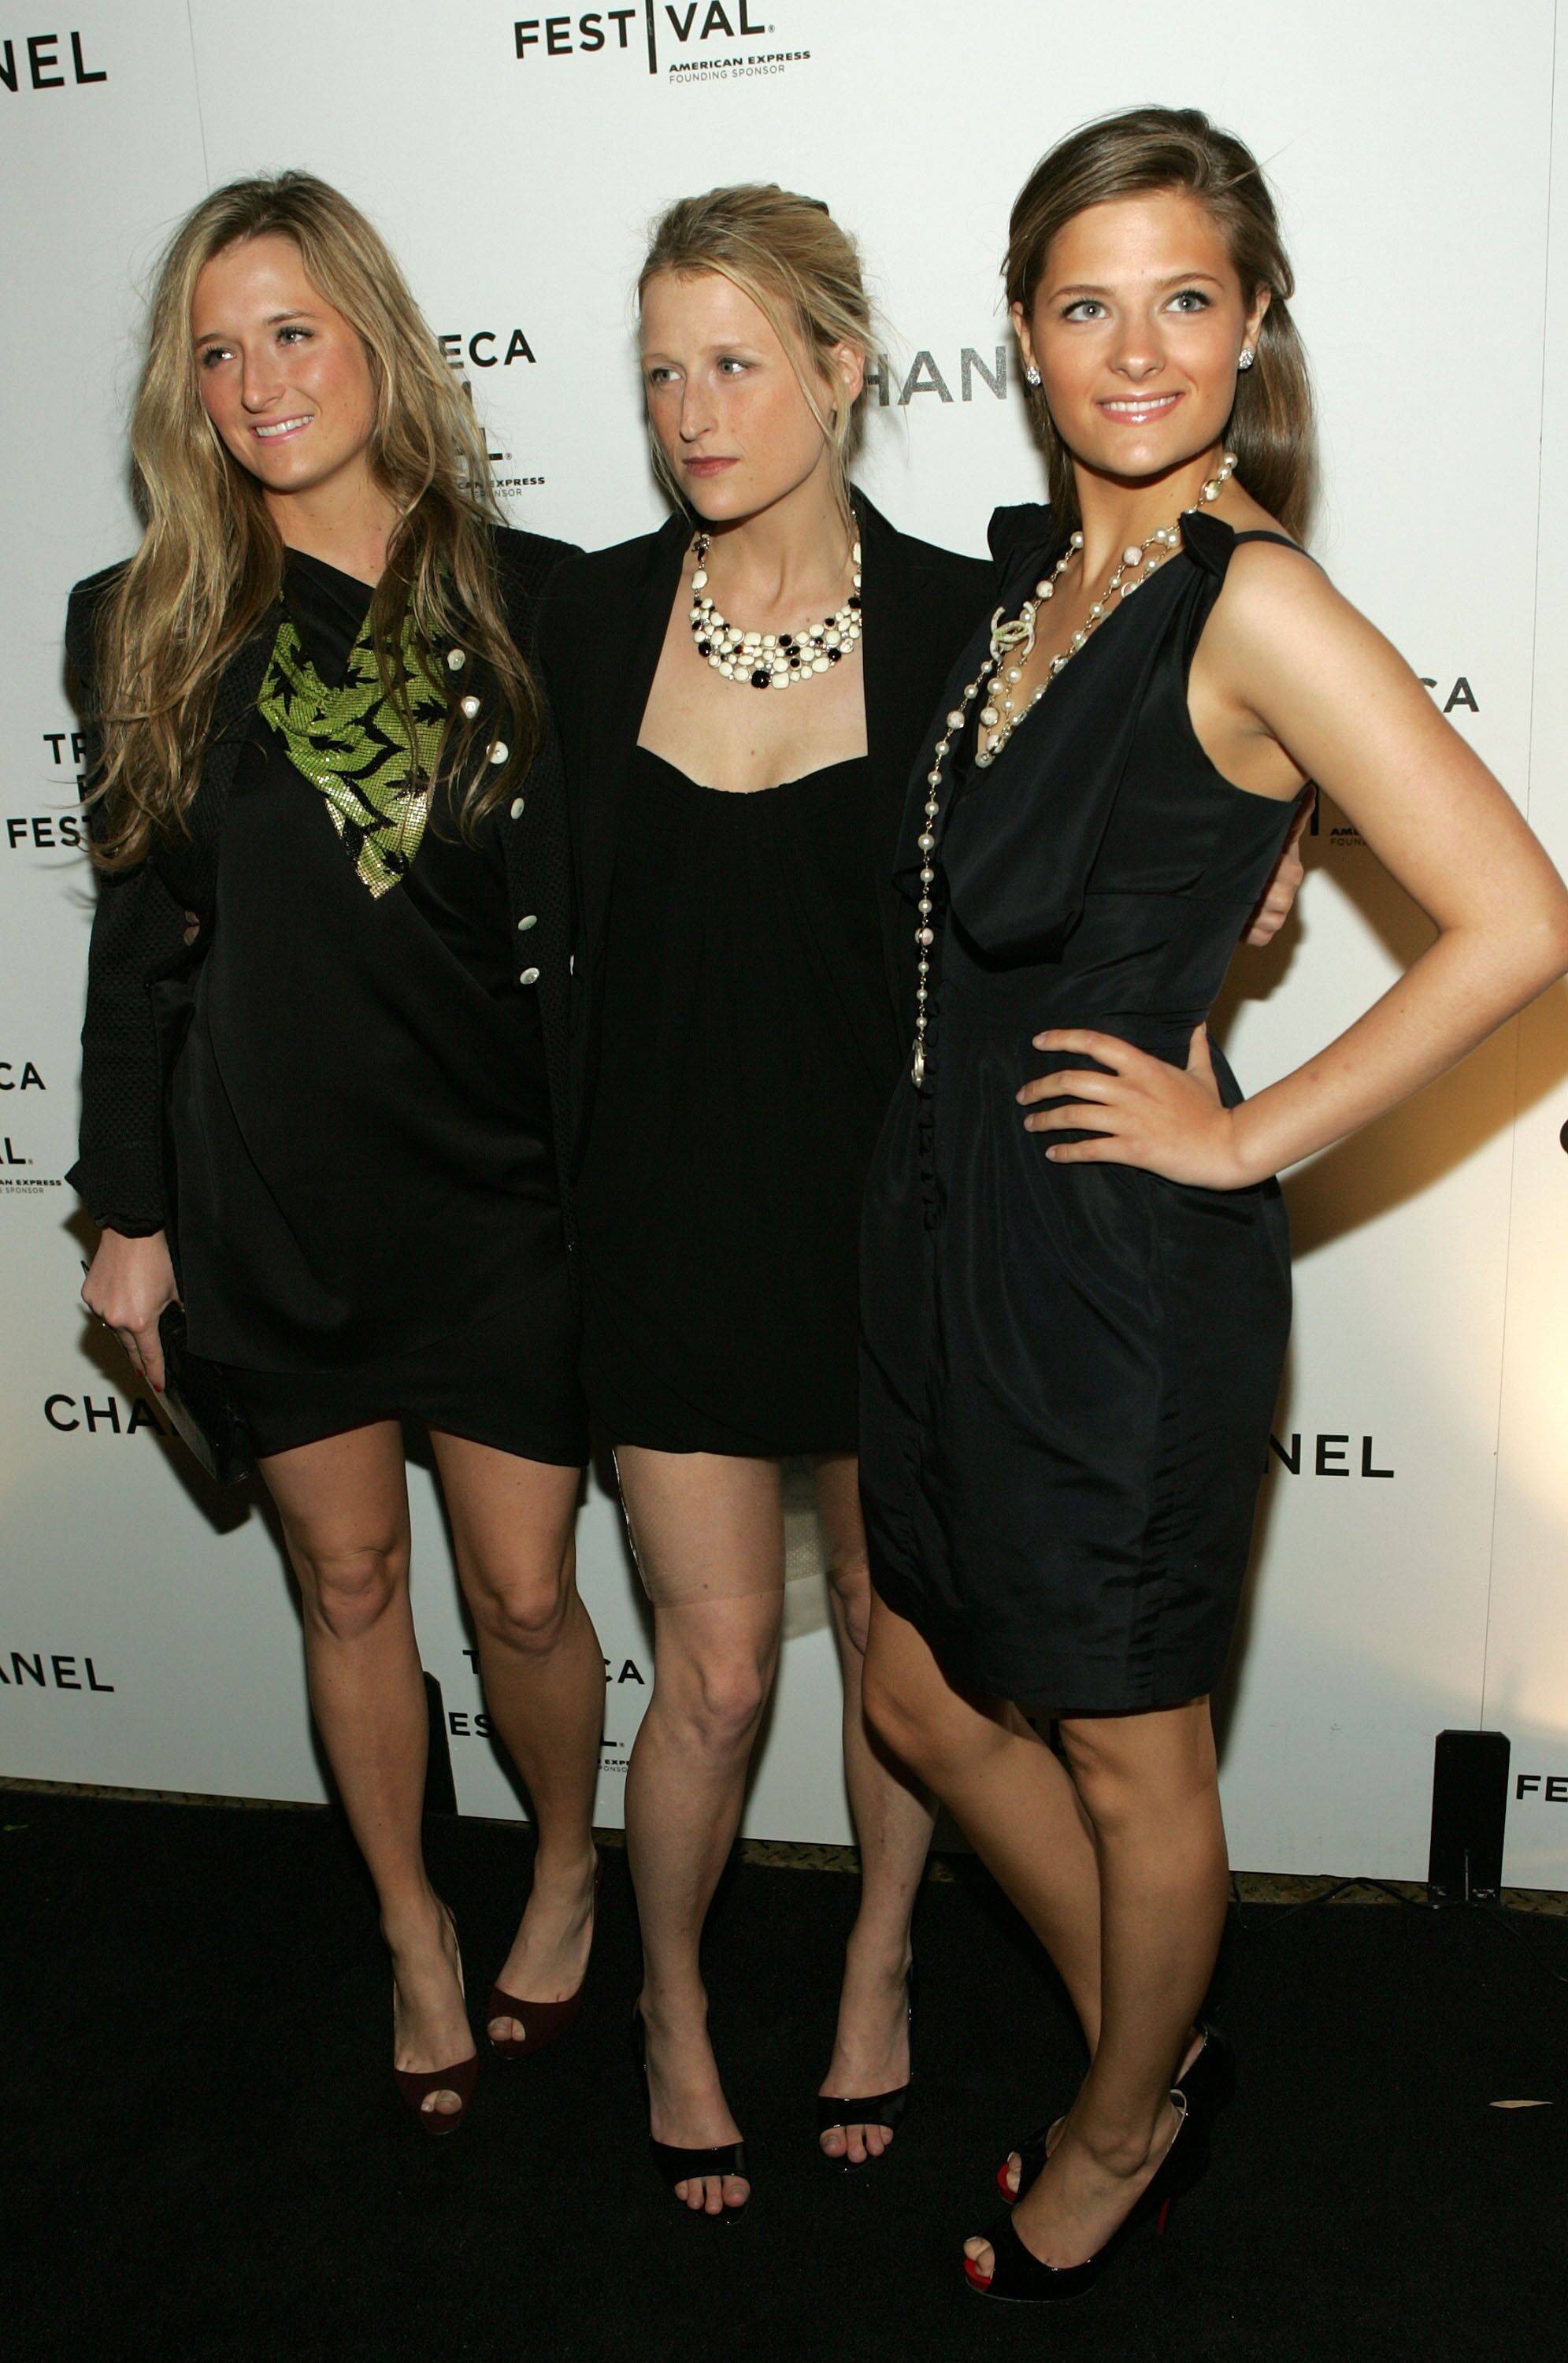 Grace Gummer, Mamie Gummer, and Louisa Gummer attend the Chanel and Tribeca Film Festival. | Source: Getty Images